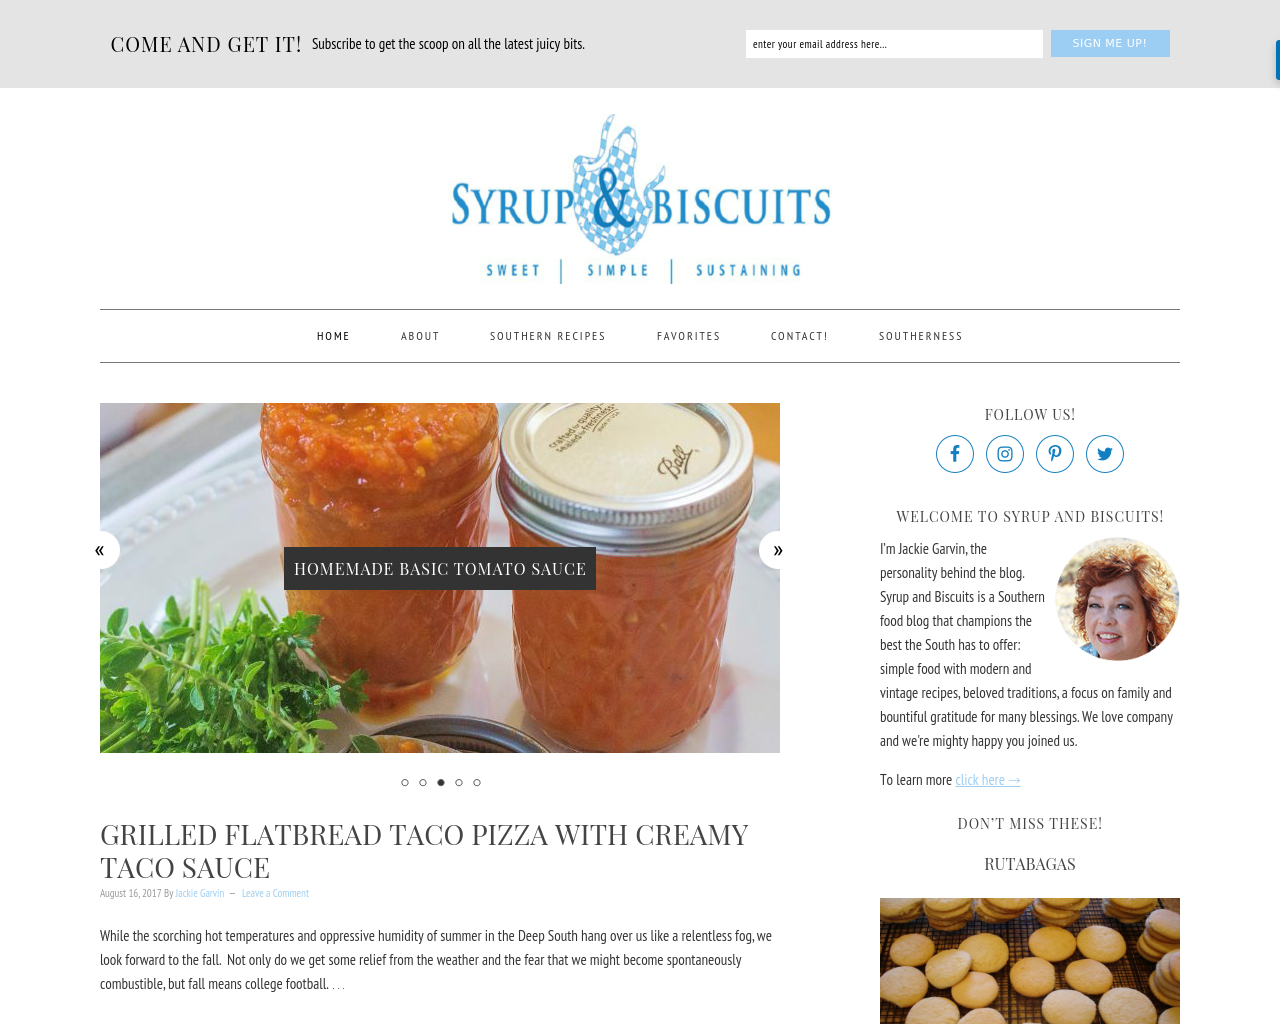 Syrup-&-Biscuits-Advertising-Reviews-Pricing